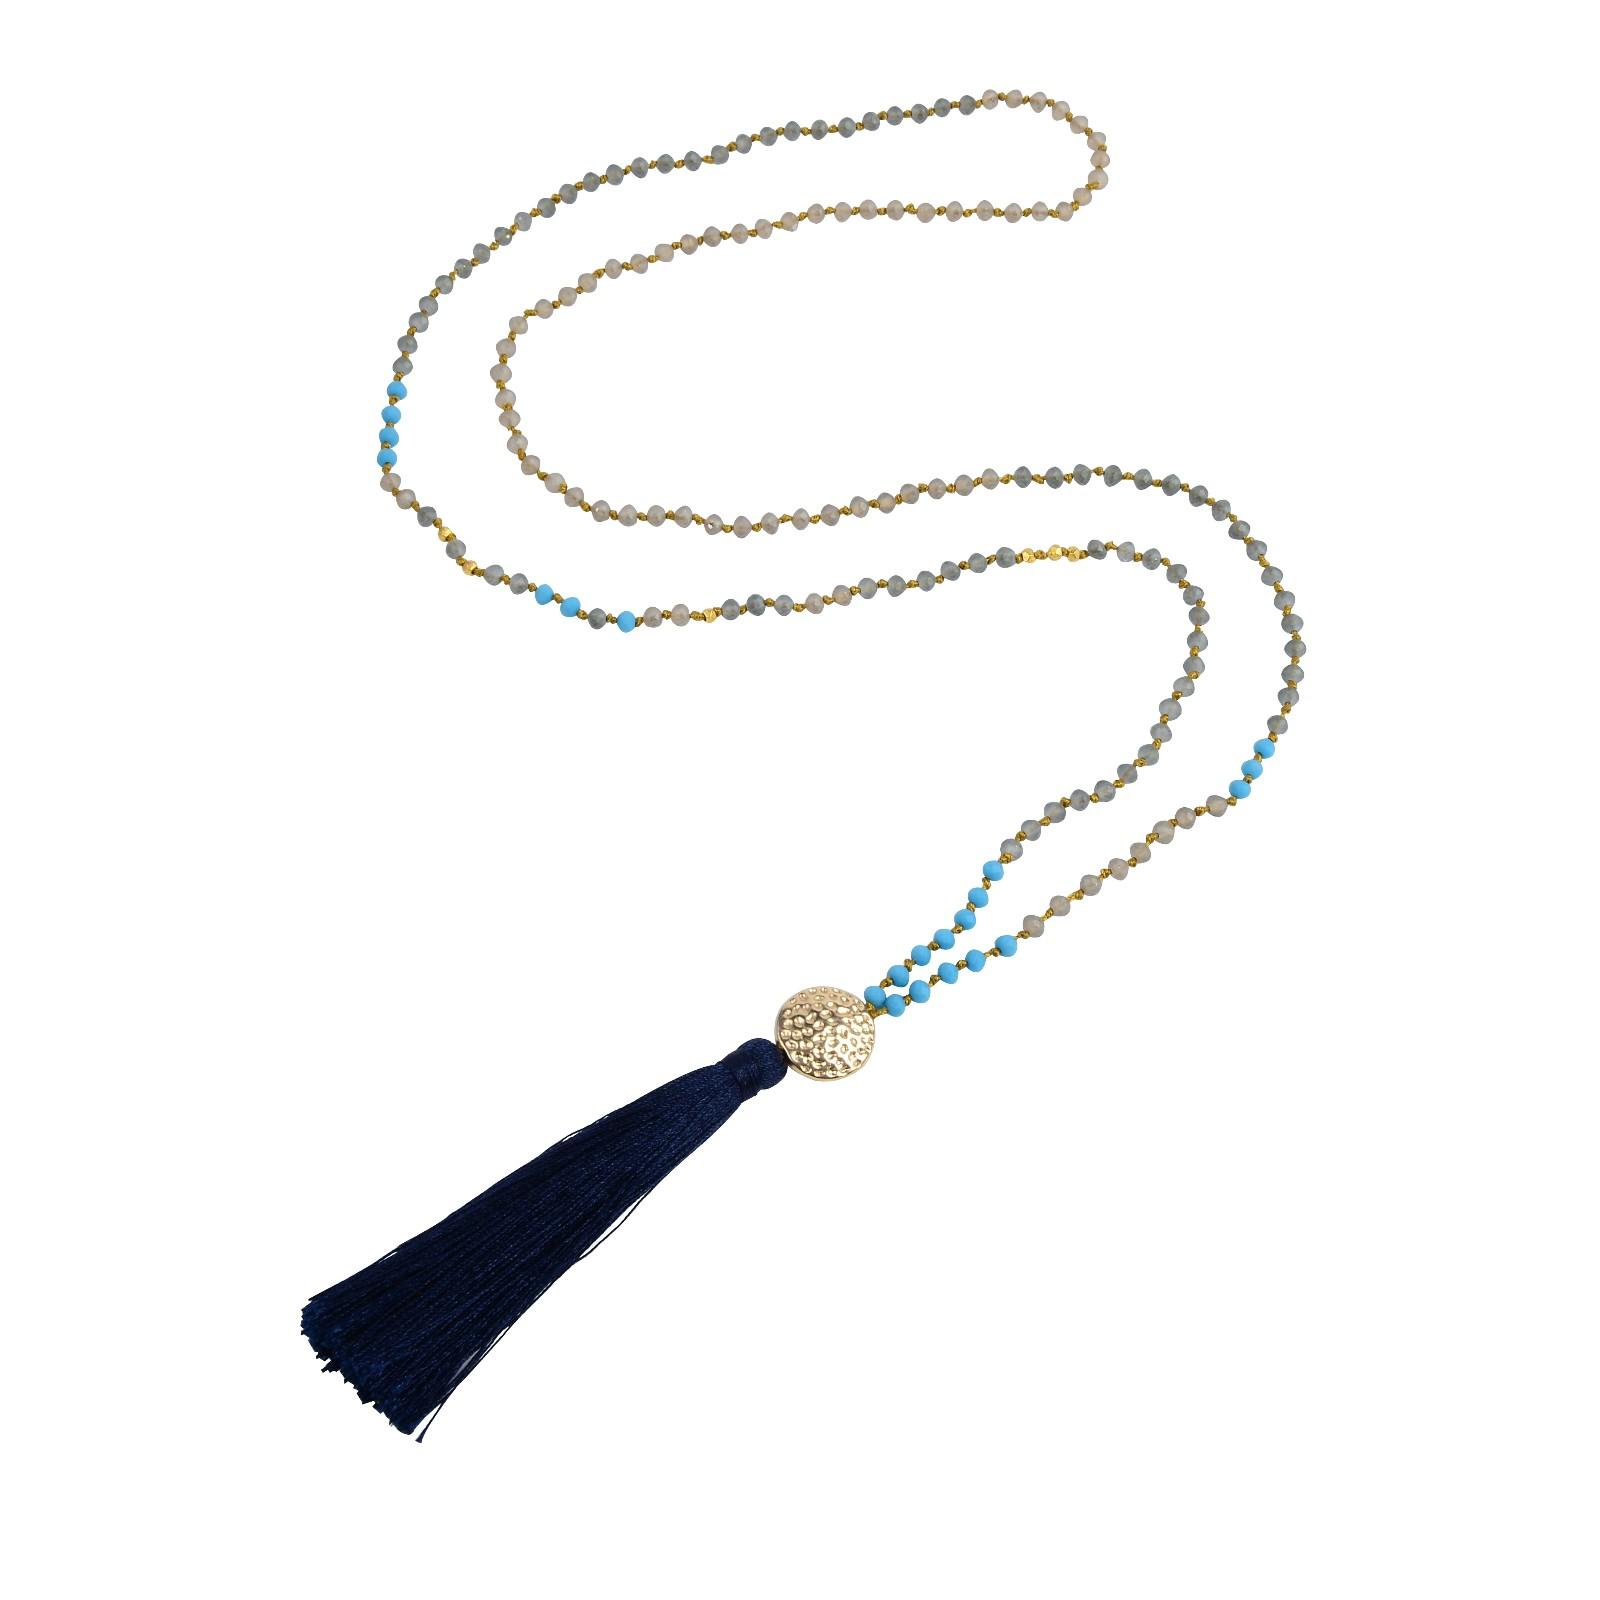 colorful pearl and crystal necklace handmade necklace TTT Jewelry Brand